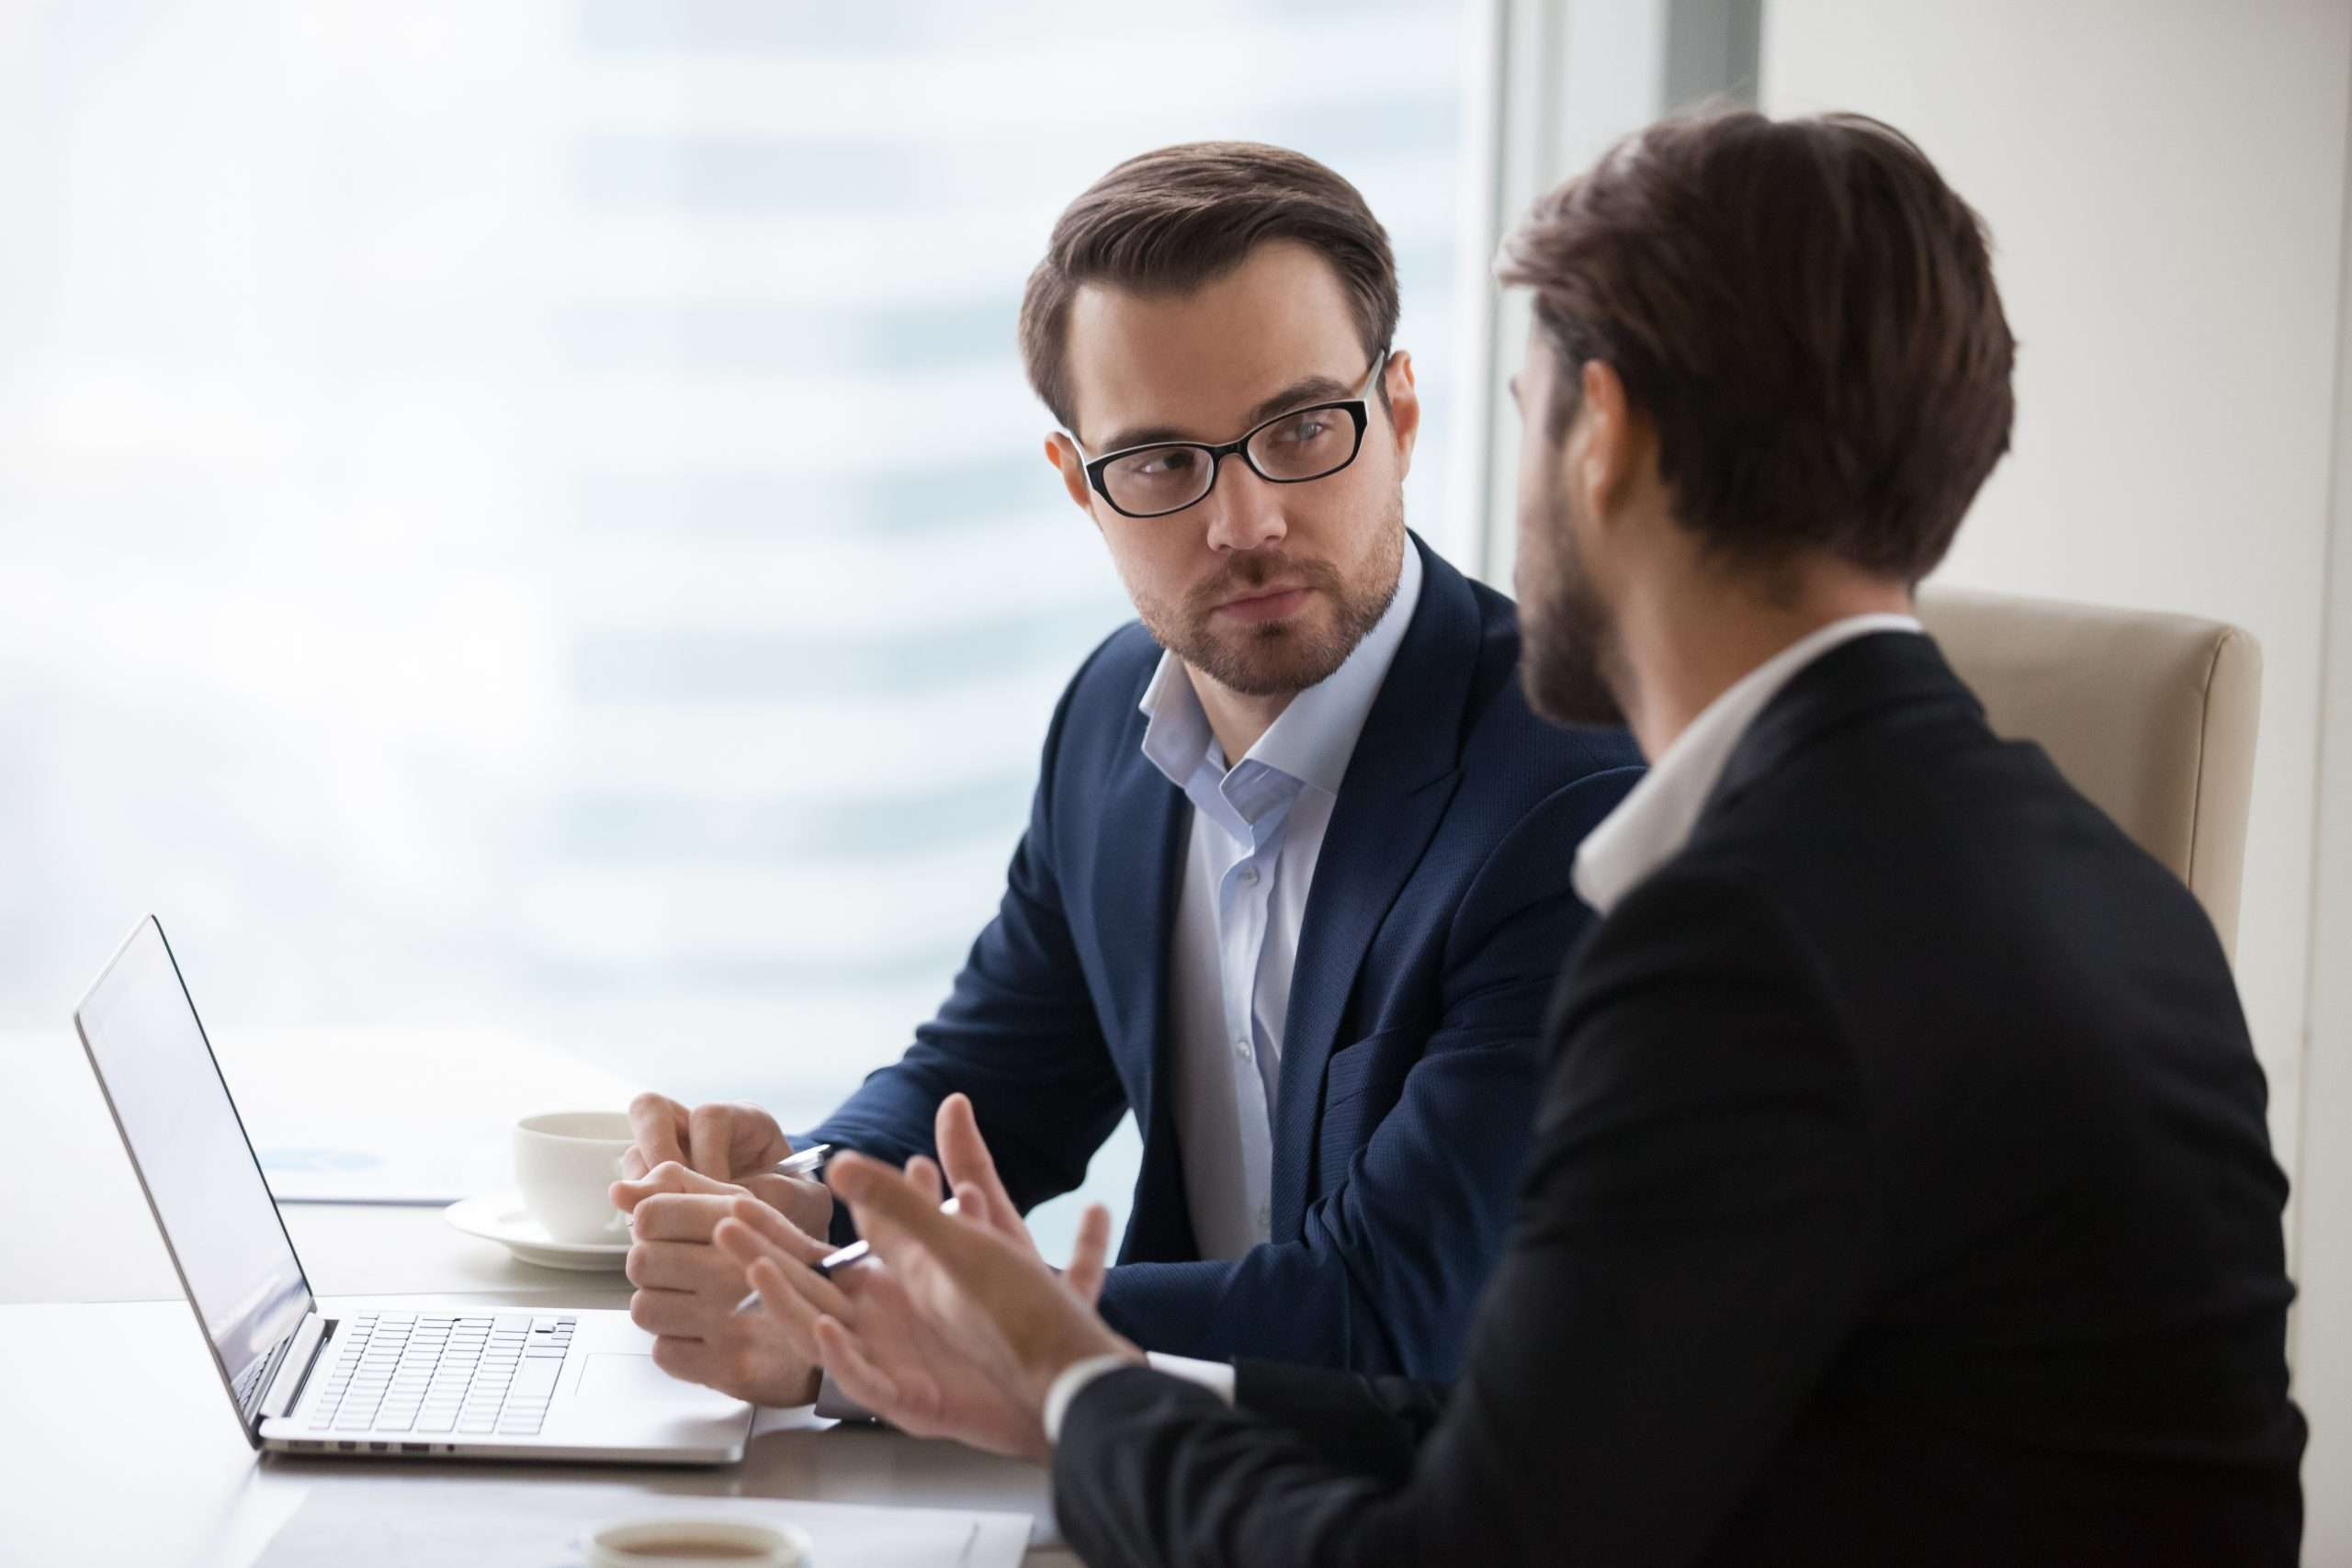 Two people sit at a desk discussing buy-sell agreements